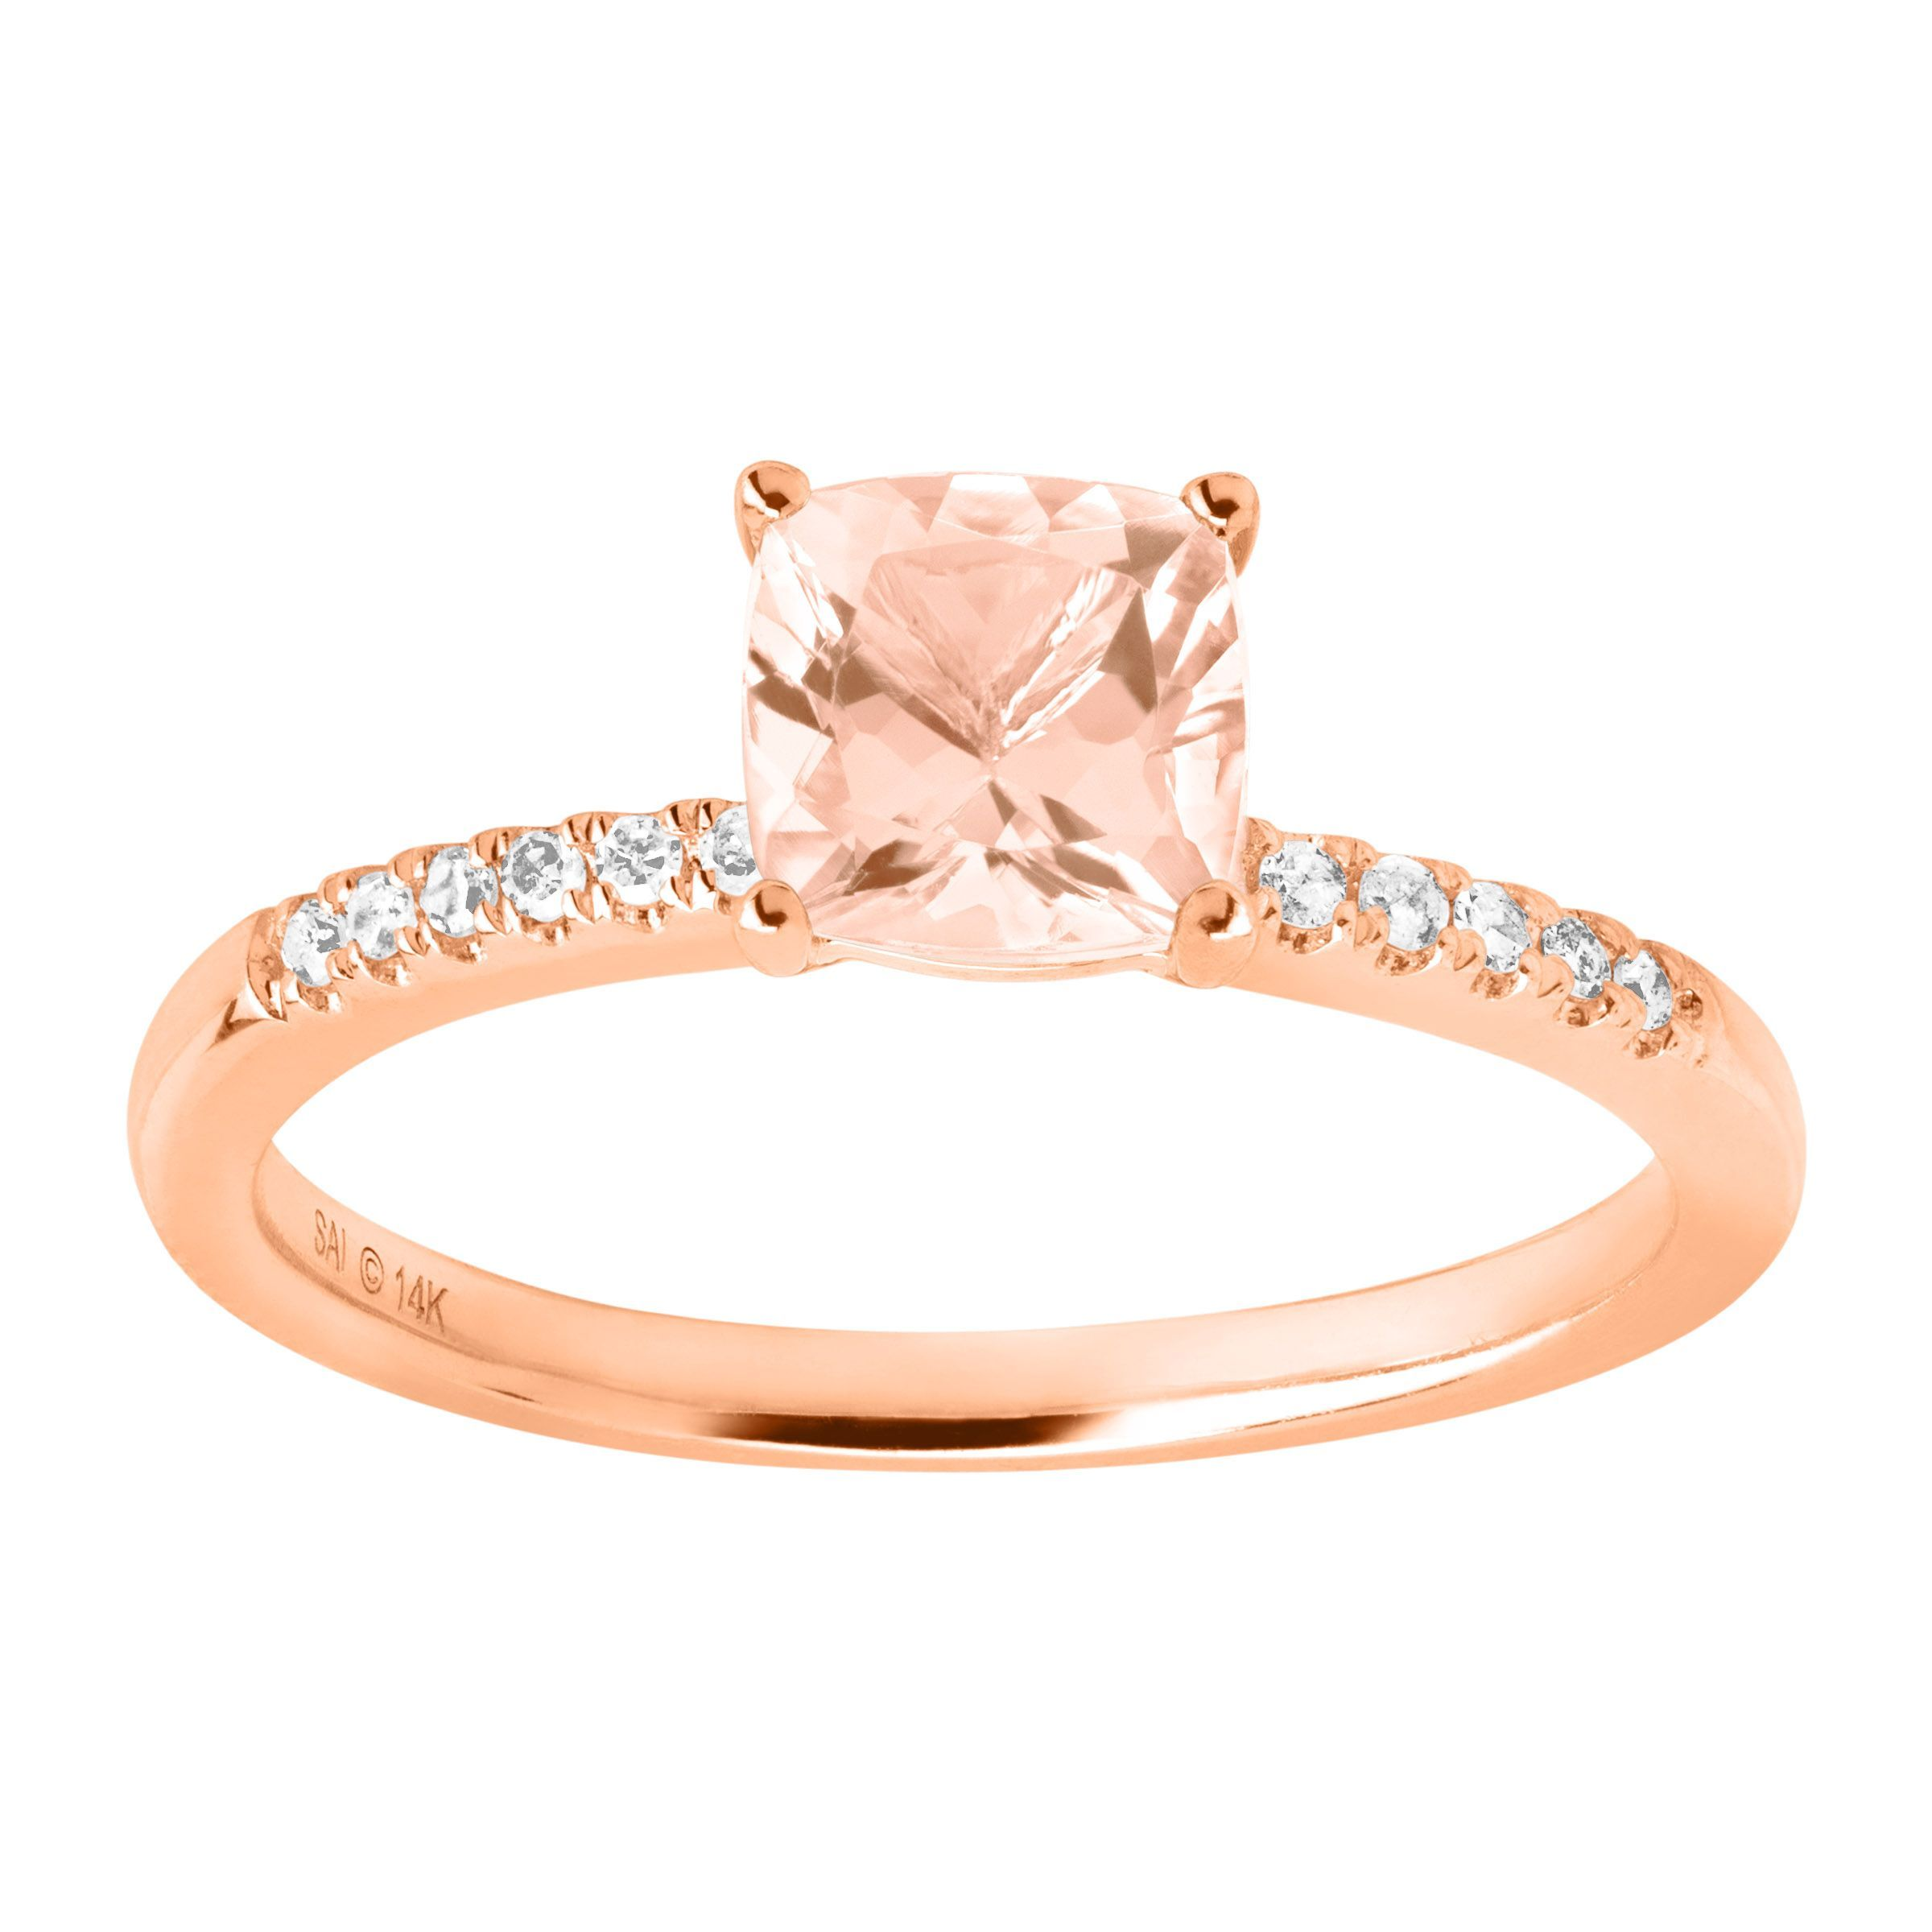 8df62a7207944 Details about 3 4 ct Natural Morganite Ring with Diamonds in 14K Rose Gold